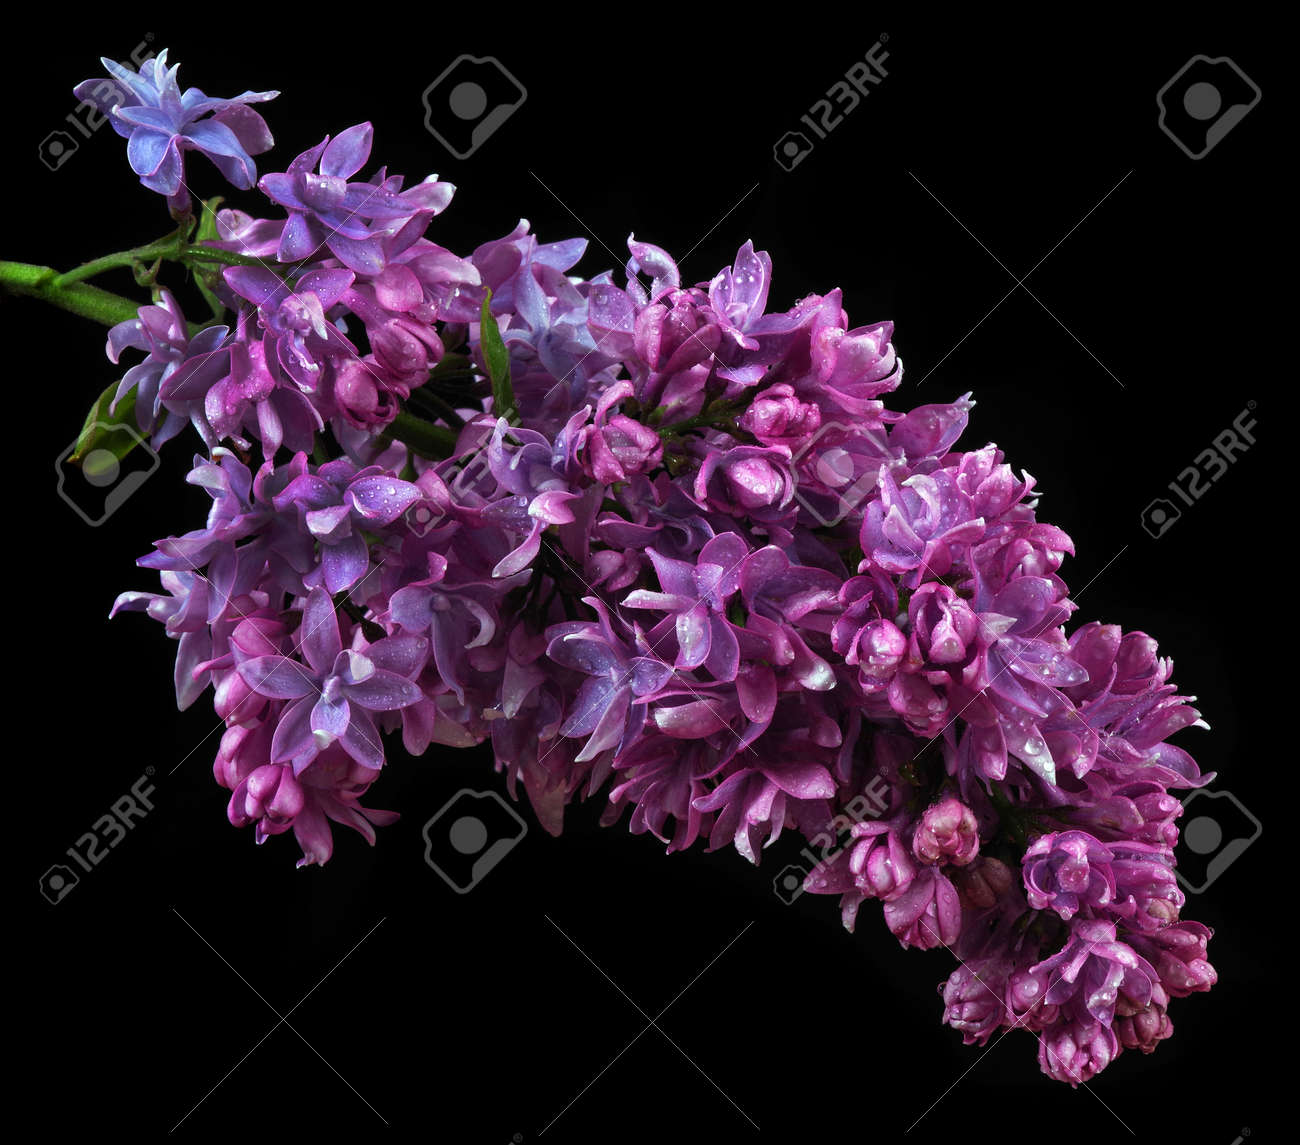 blooming lilac close-up isolated on black - 169620174